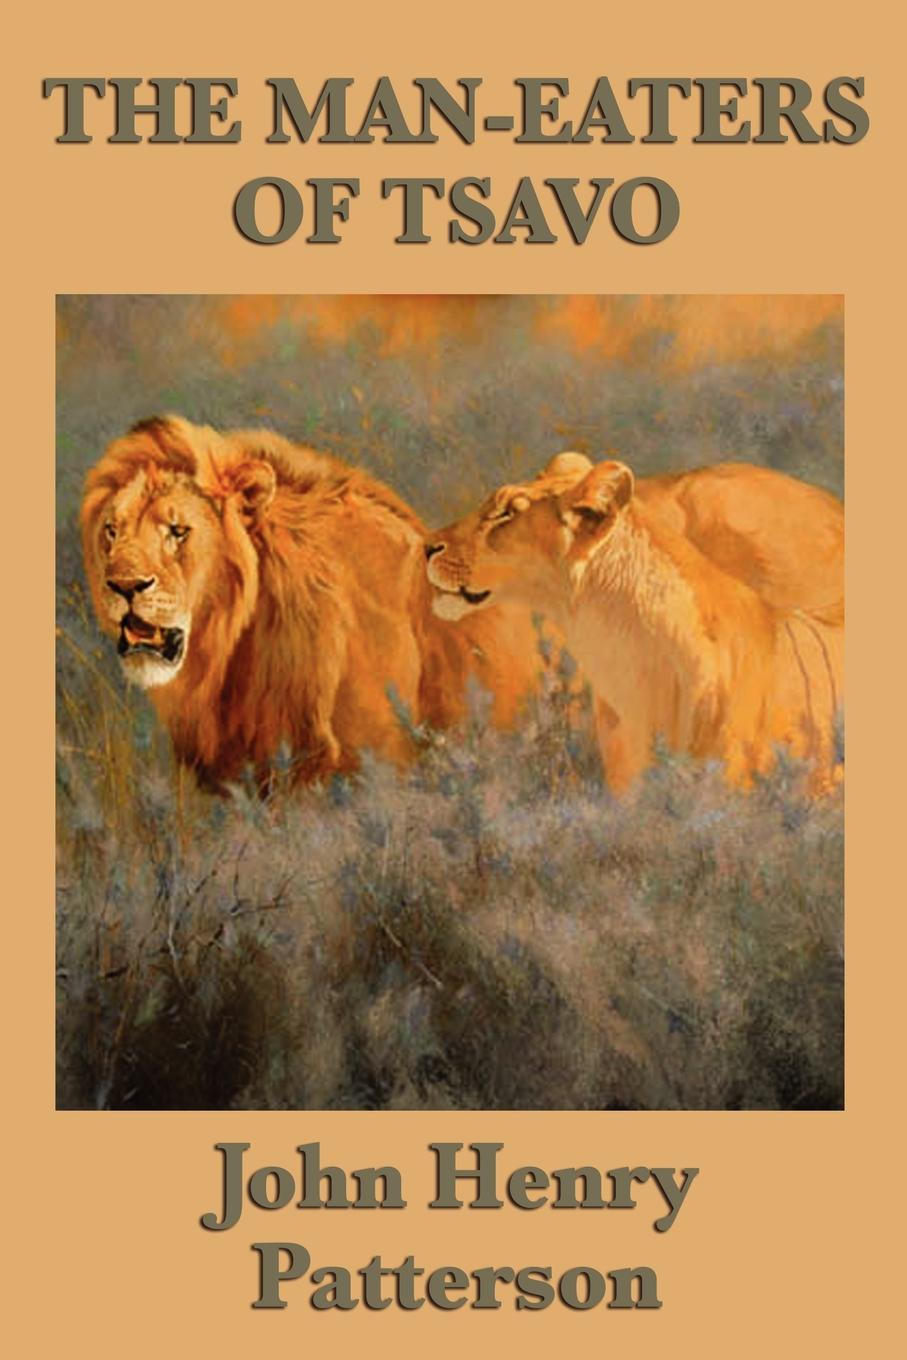 John Henry Patterson The Man-eaters of Tsavo